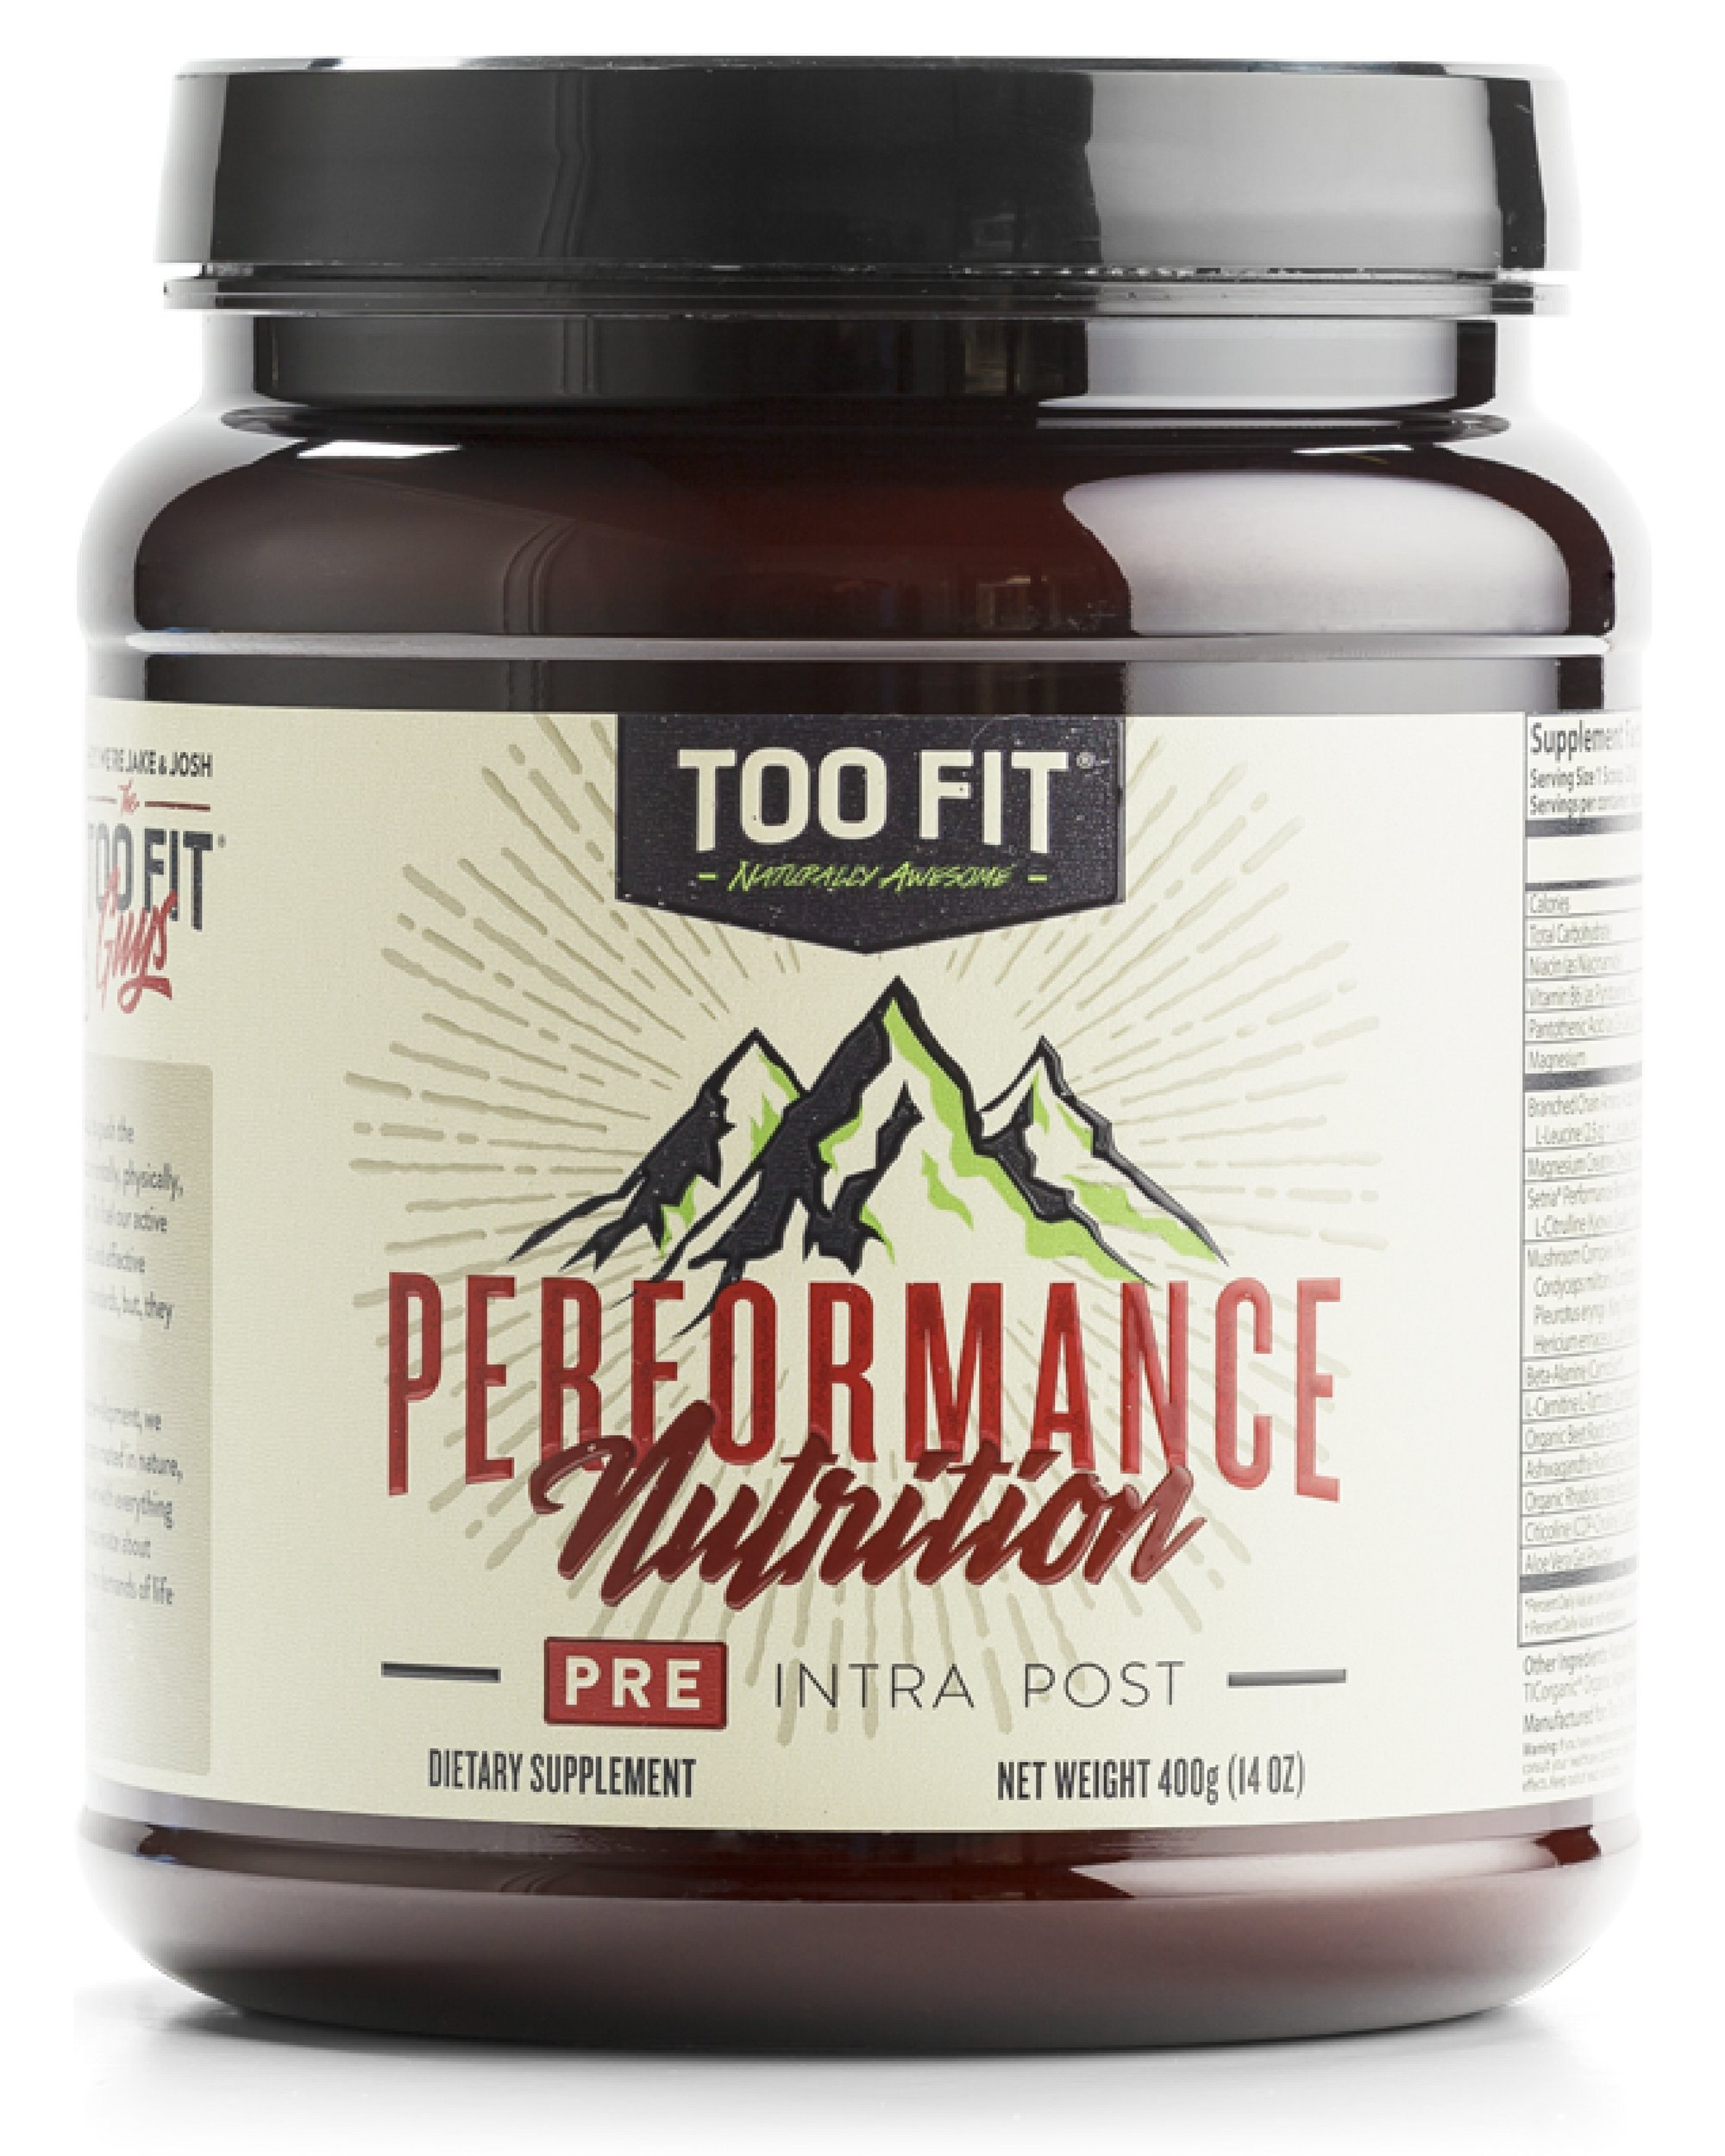 Too Fit ® PRE | All Natural Stimulant Free Pre Workout Supplement Drink Powder | Organic Adaptogens, BCAA's, Creatine Magnapower, Cognizin, Carnosyn, | Blackberry Lemonade, 20 Servings